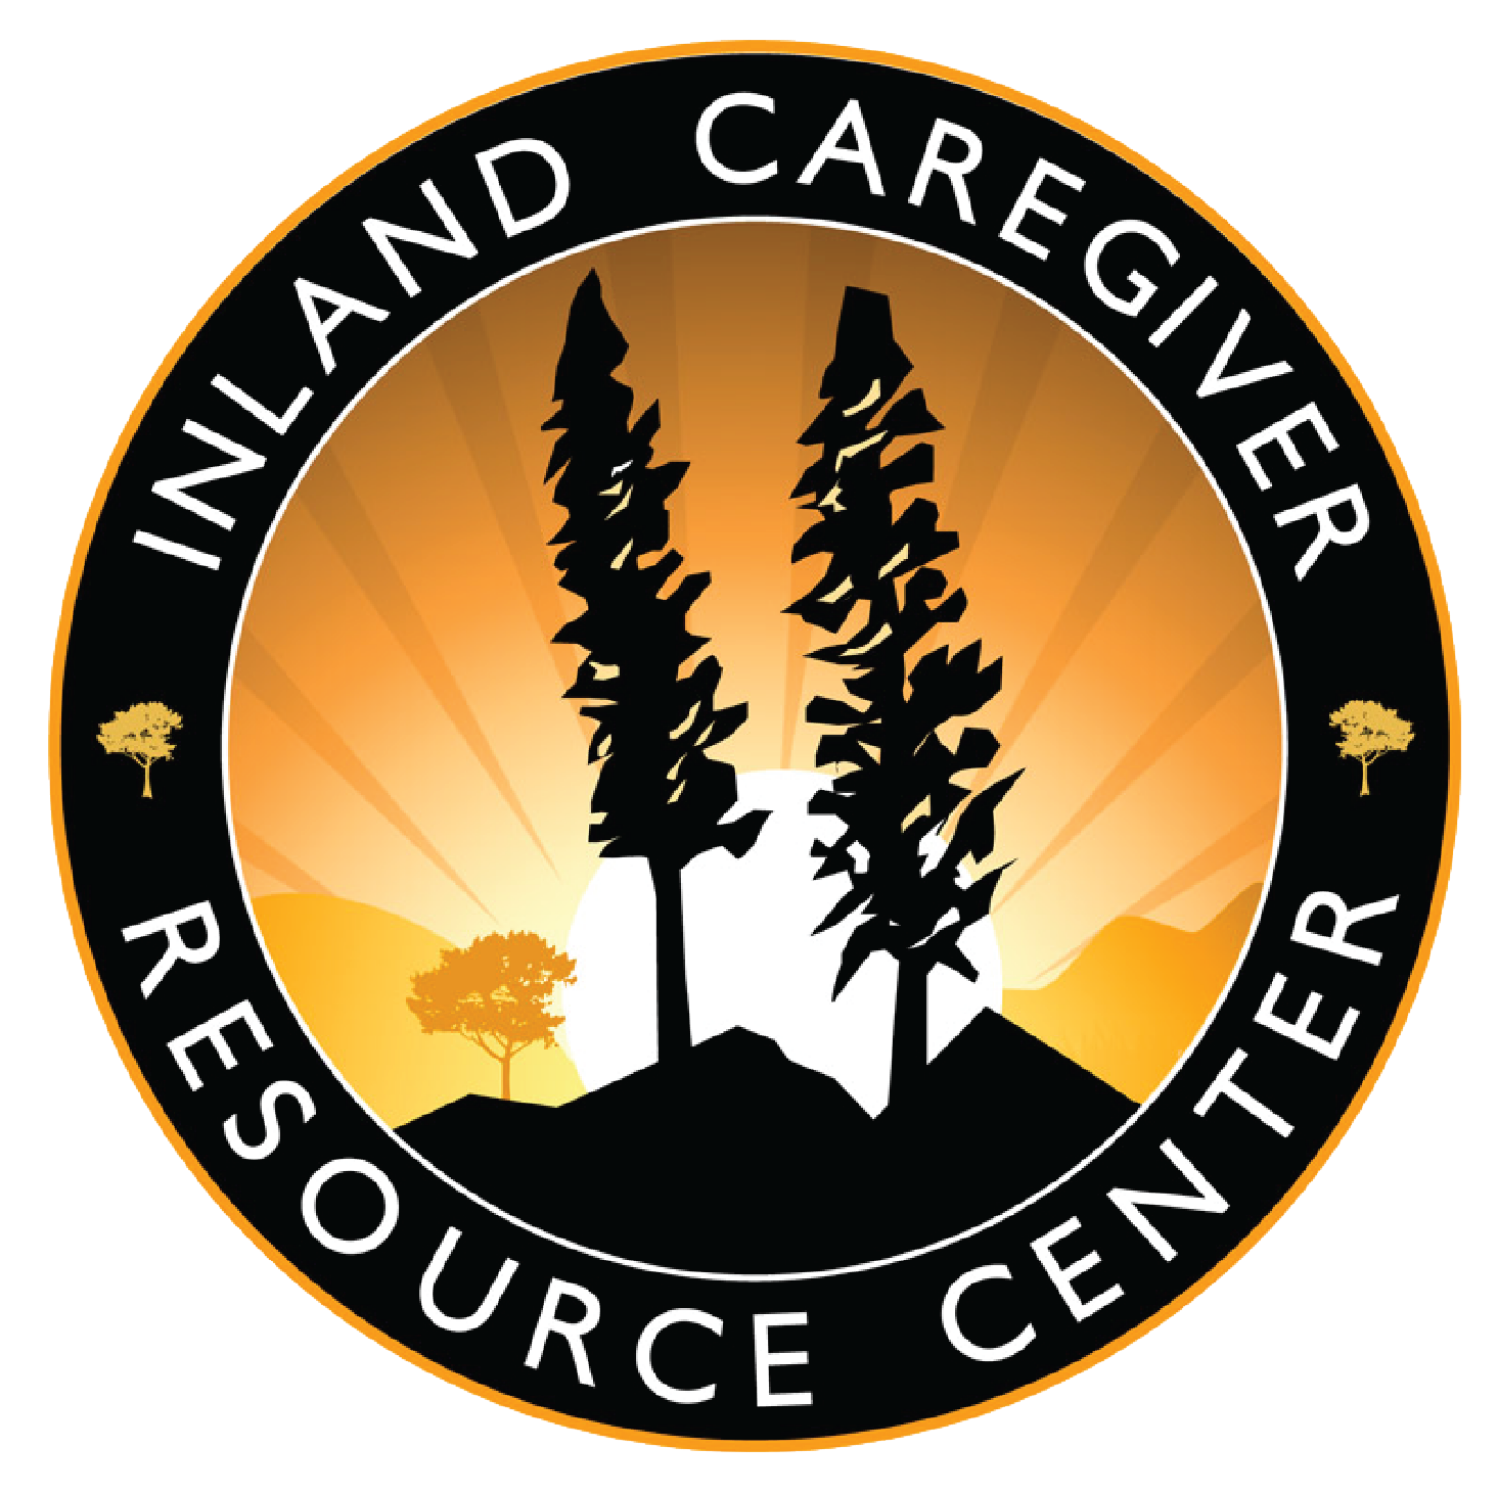 Inland Caregiver Resource Center